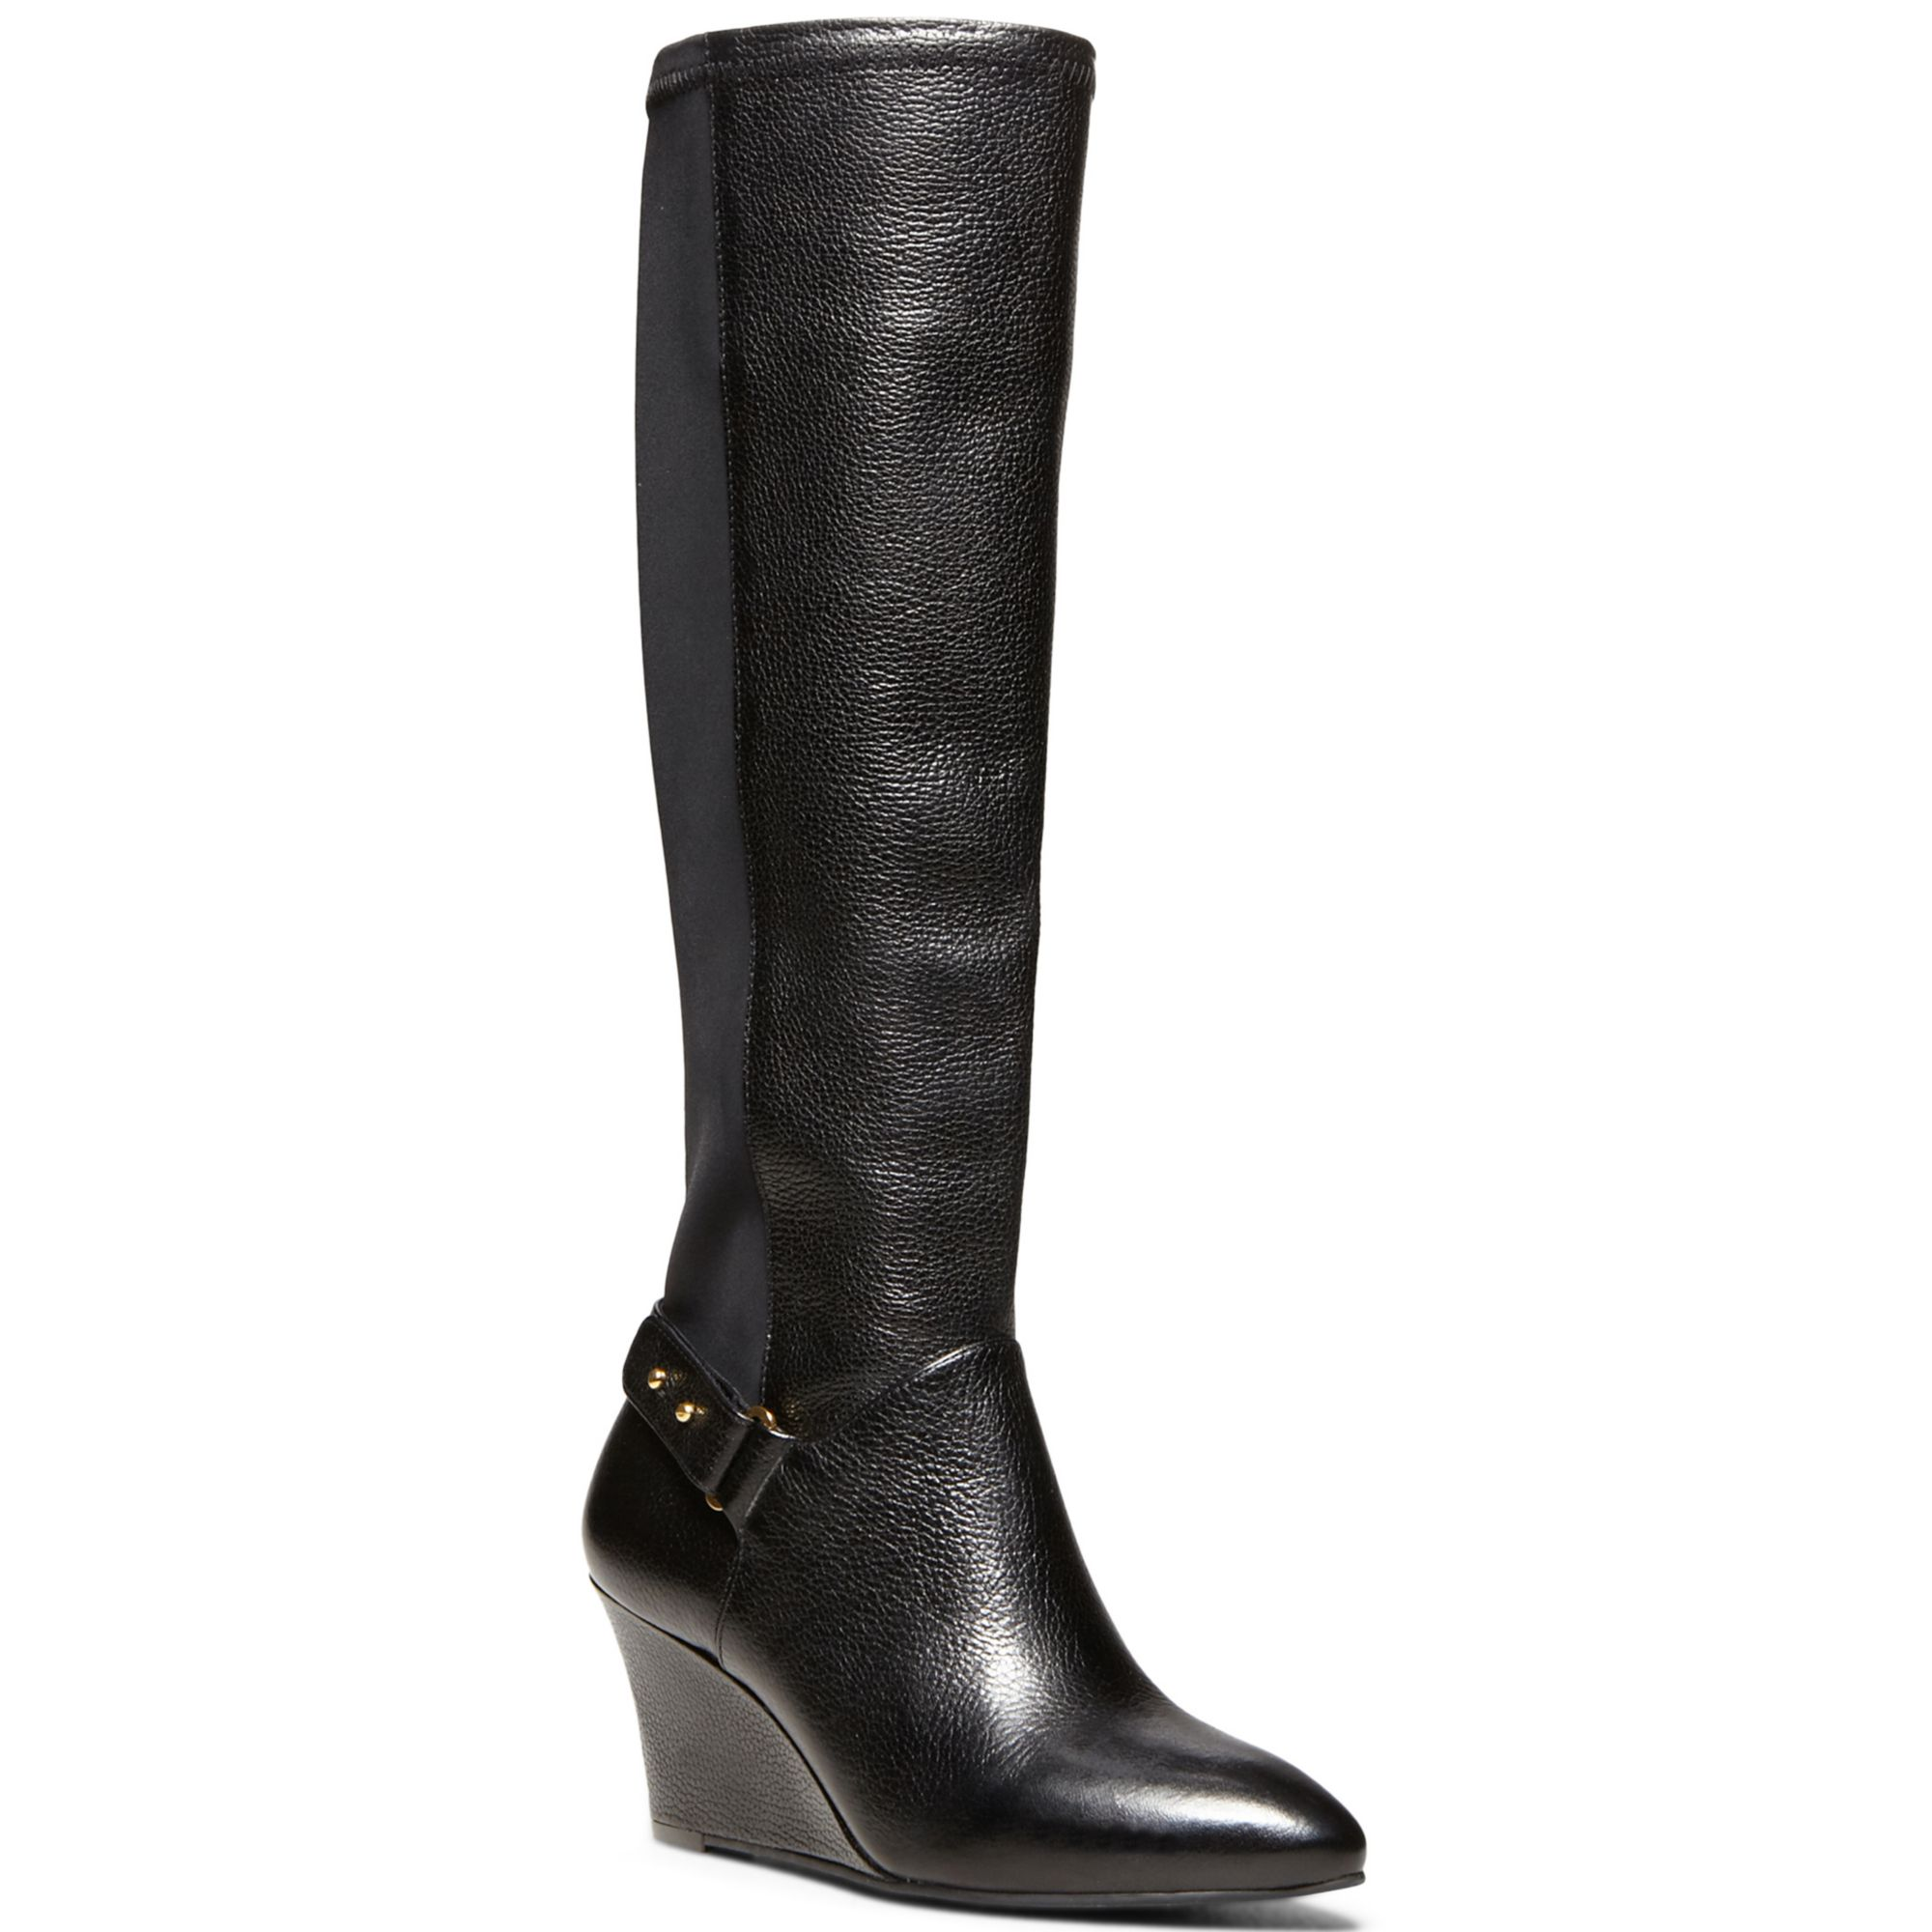 steven by steve madden wedge boots in black lyst